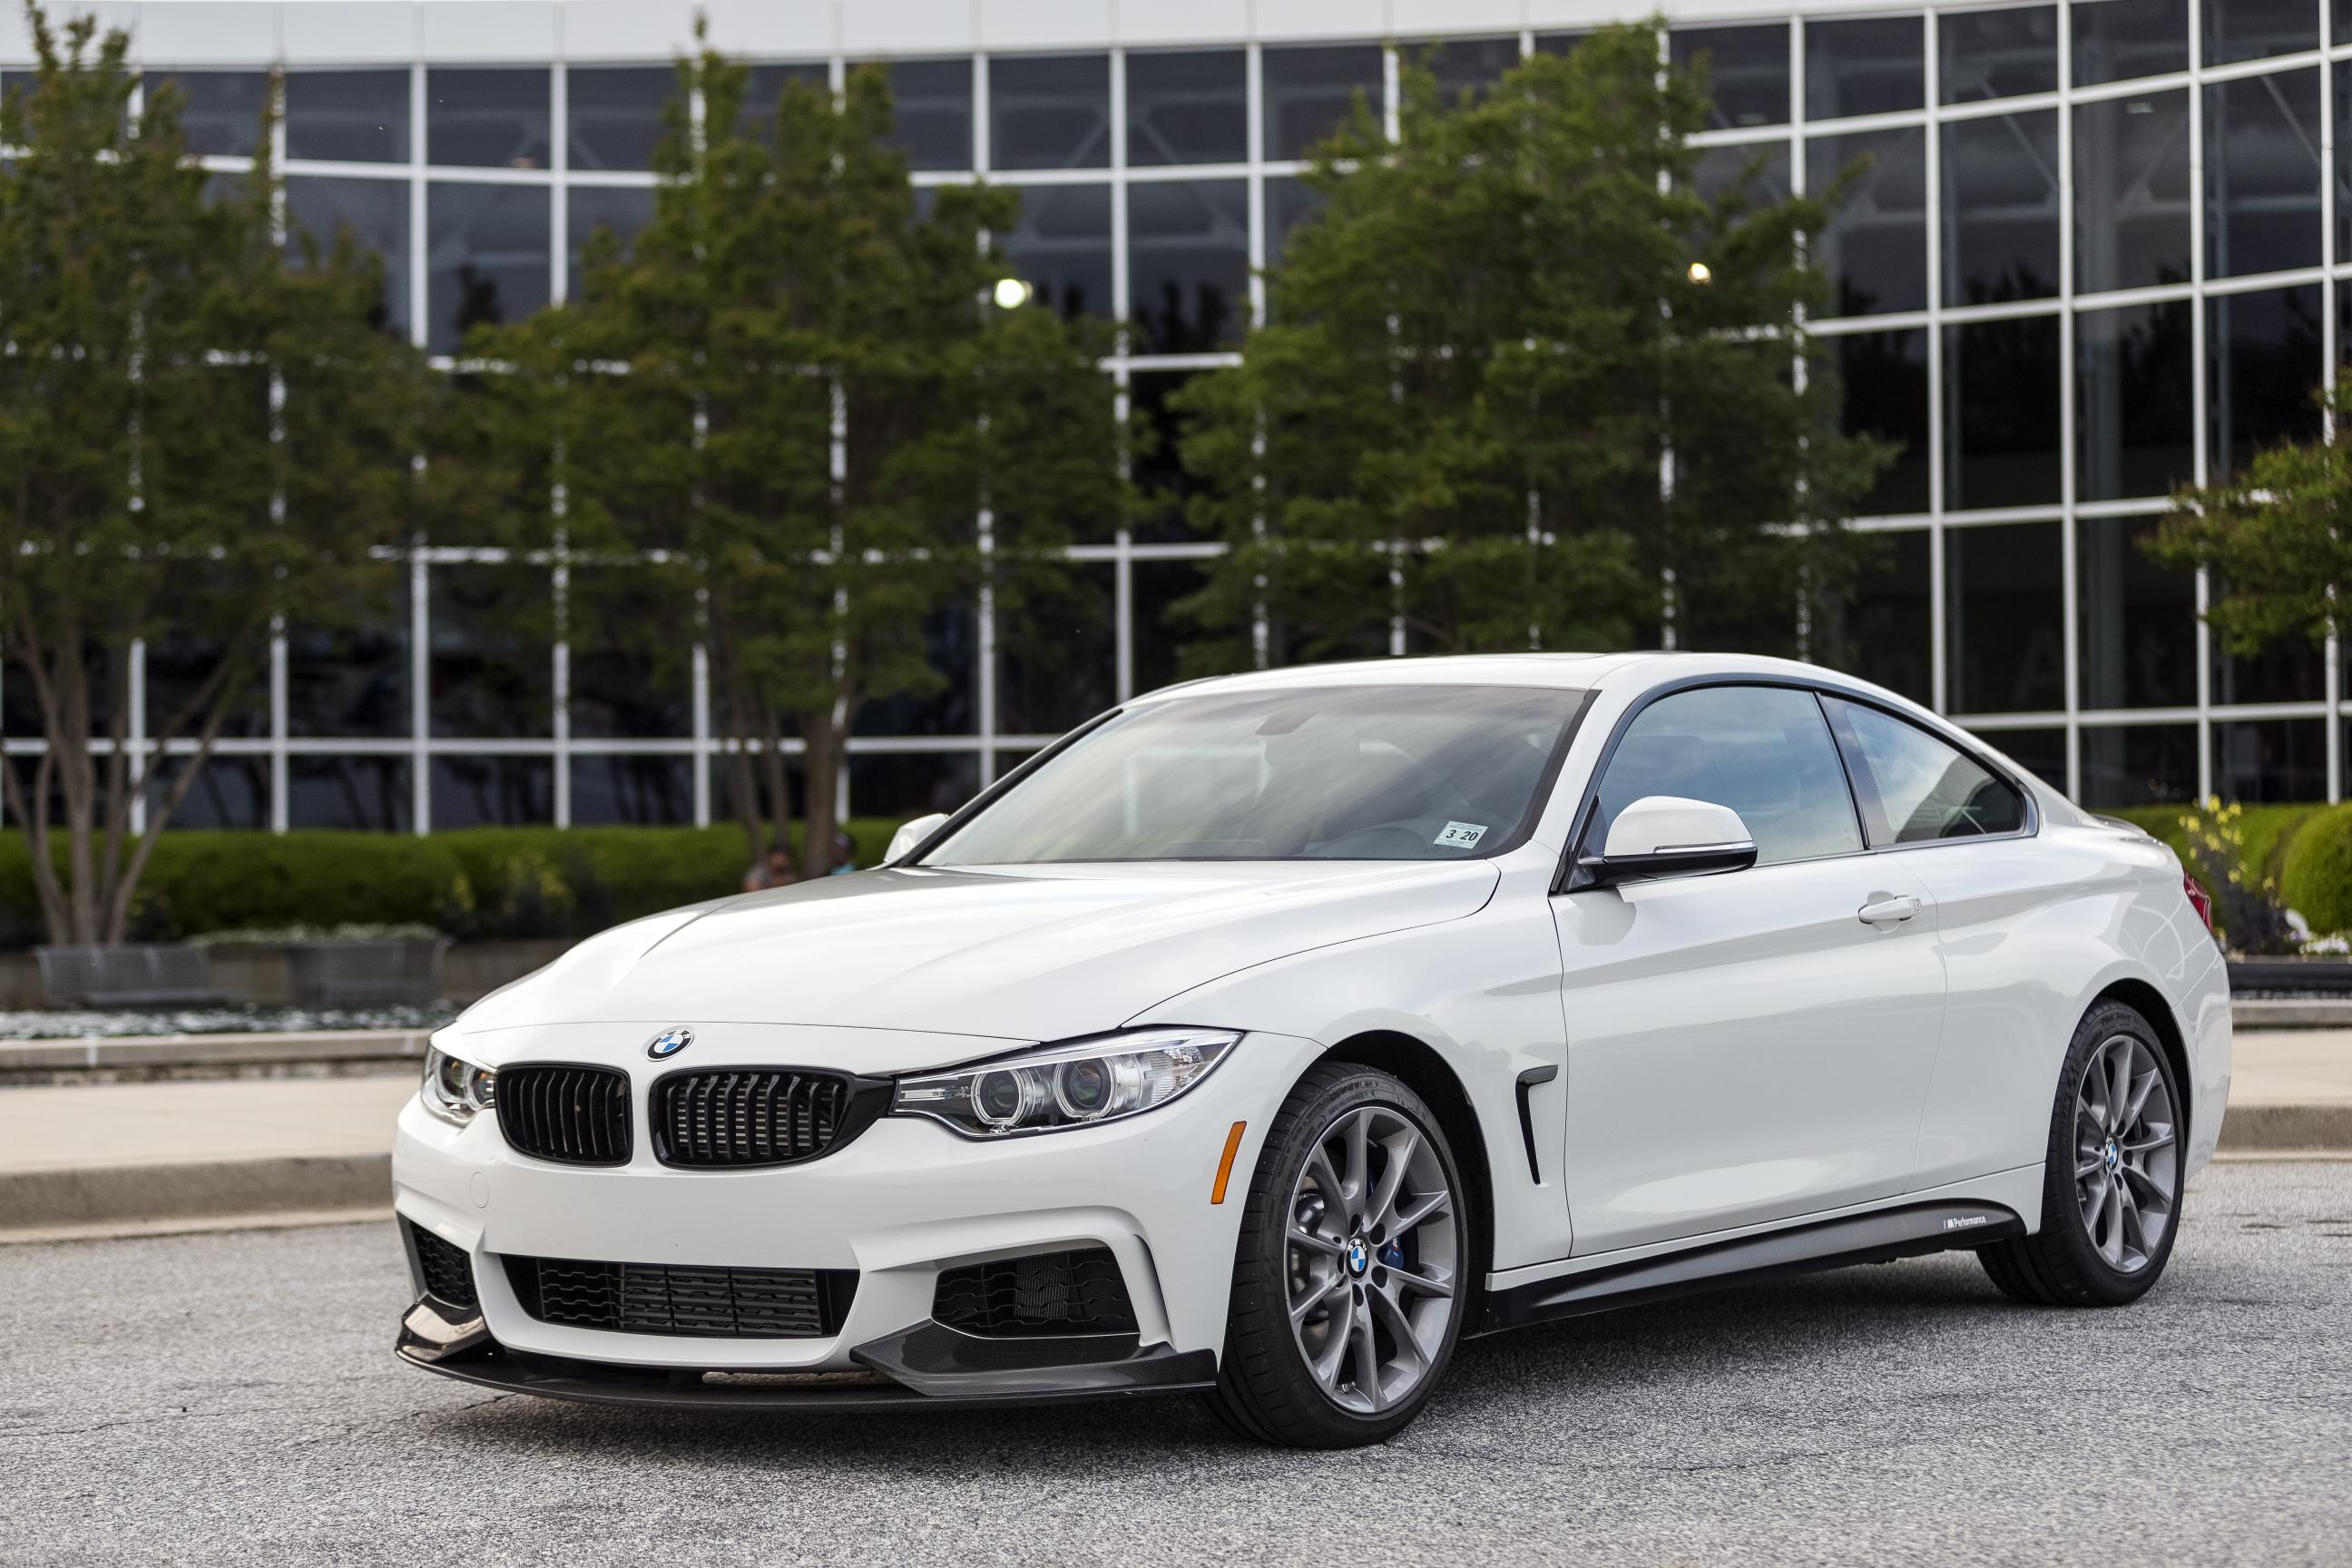 maxresdefault youtube pkg for tampa premium luxury with bmw watch in series bay all new sale